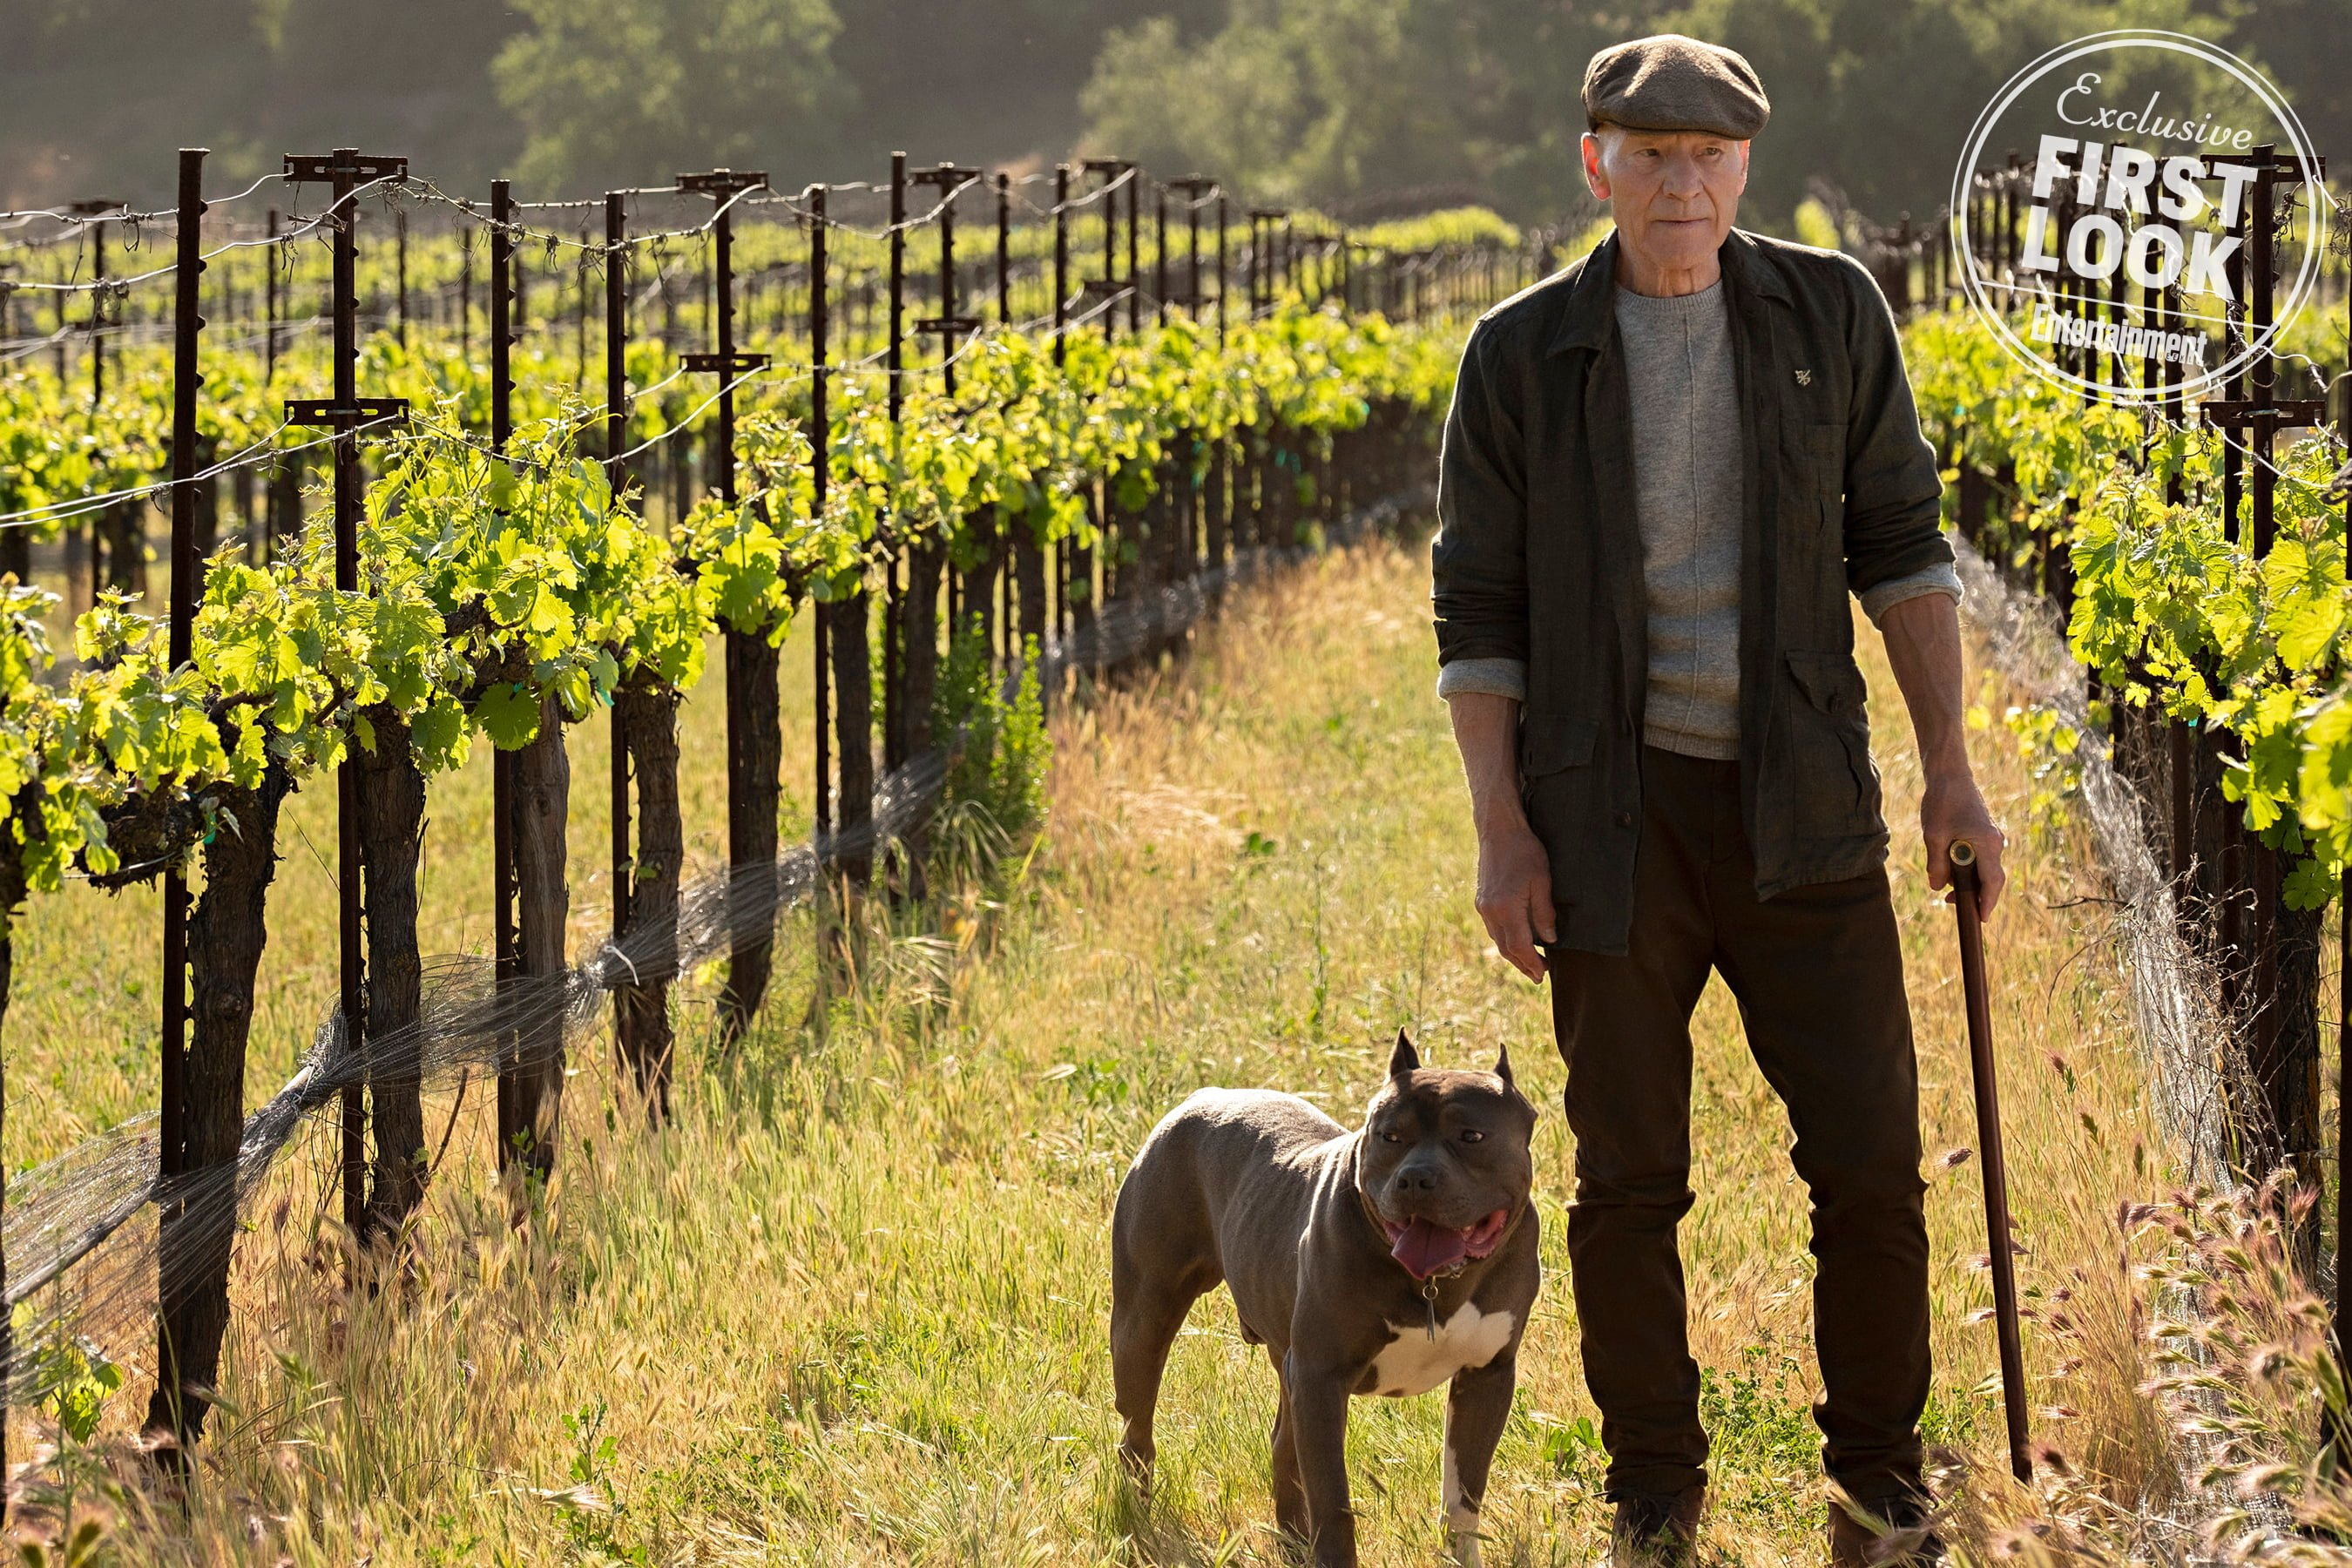 The Latest 'Star Trek: Picard' Teaser Introduces His New Number One